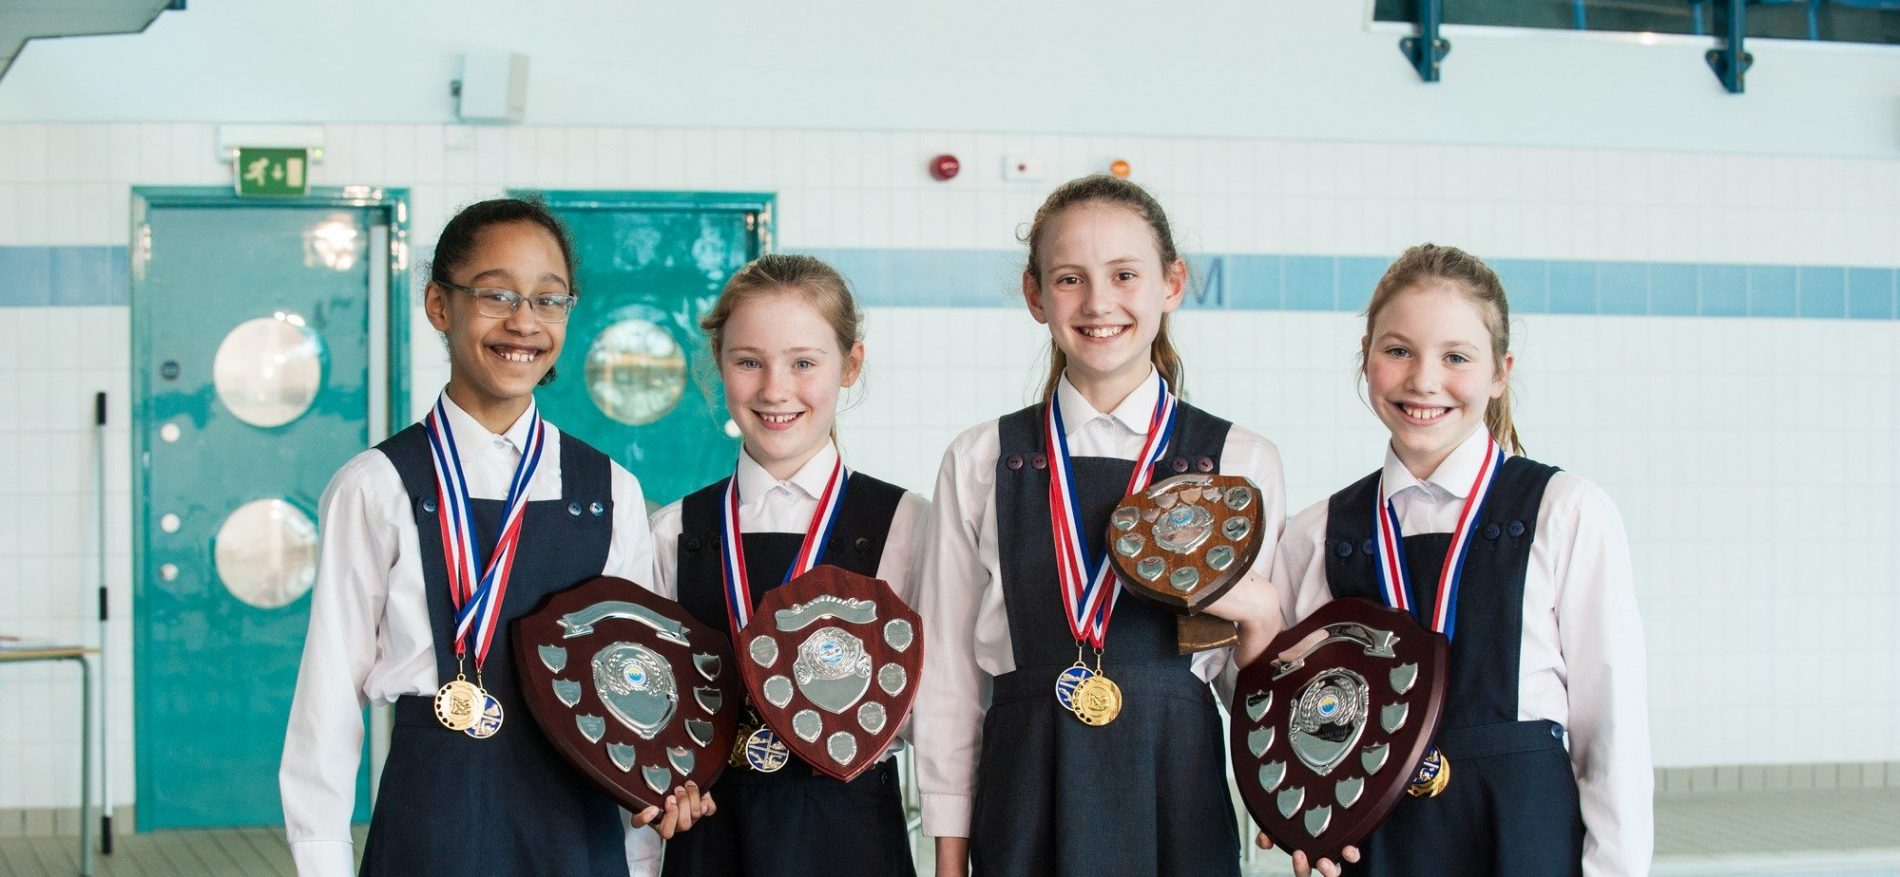 school students holding awards and medals